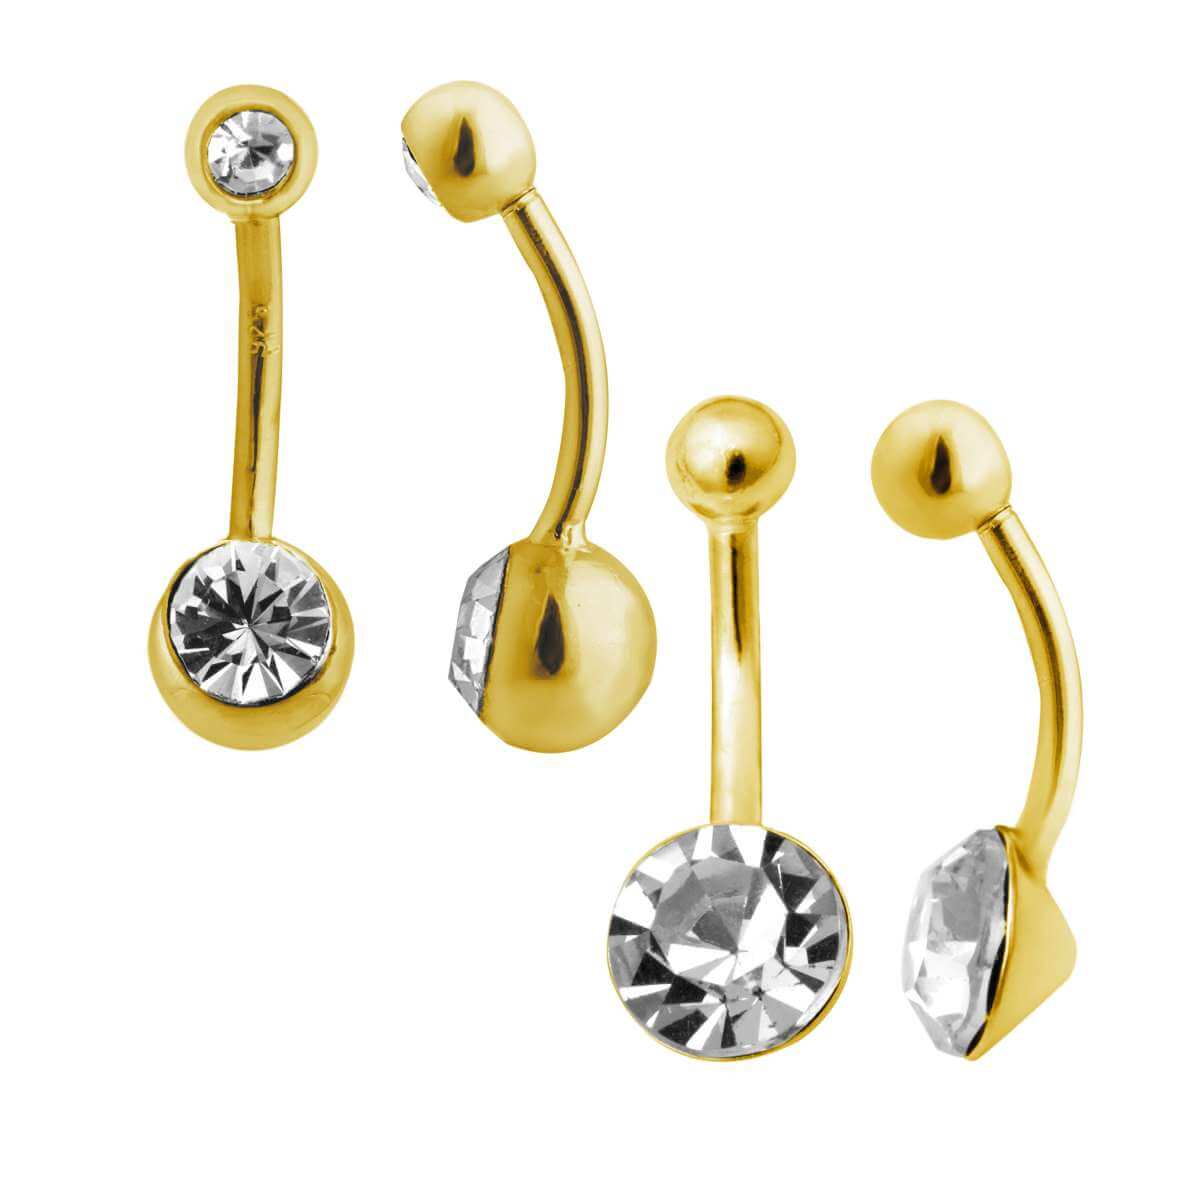 Gold Plated Sterling Silver & CZ Belly Bar Piercing - 2 Pack